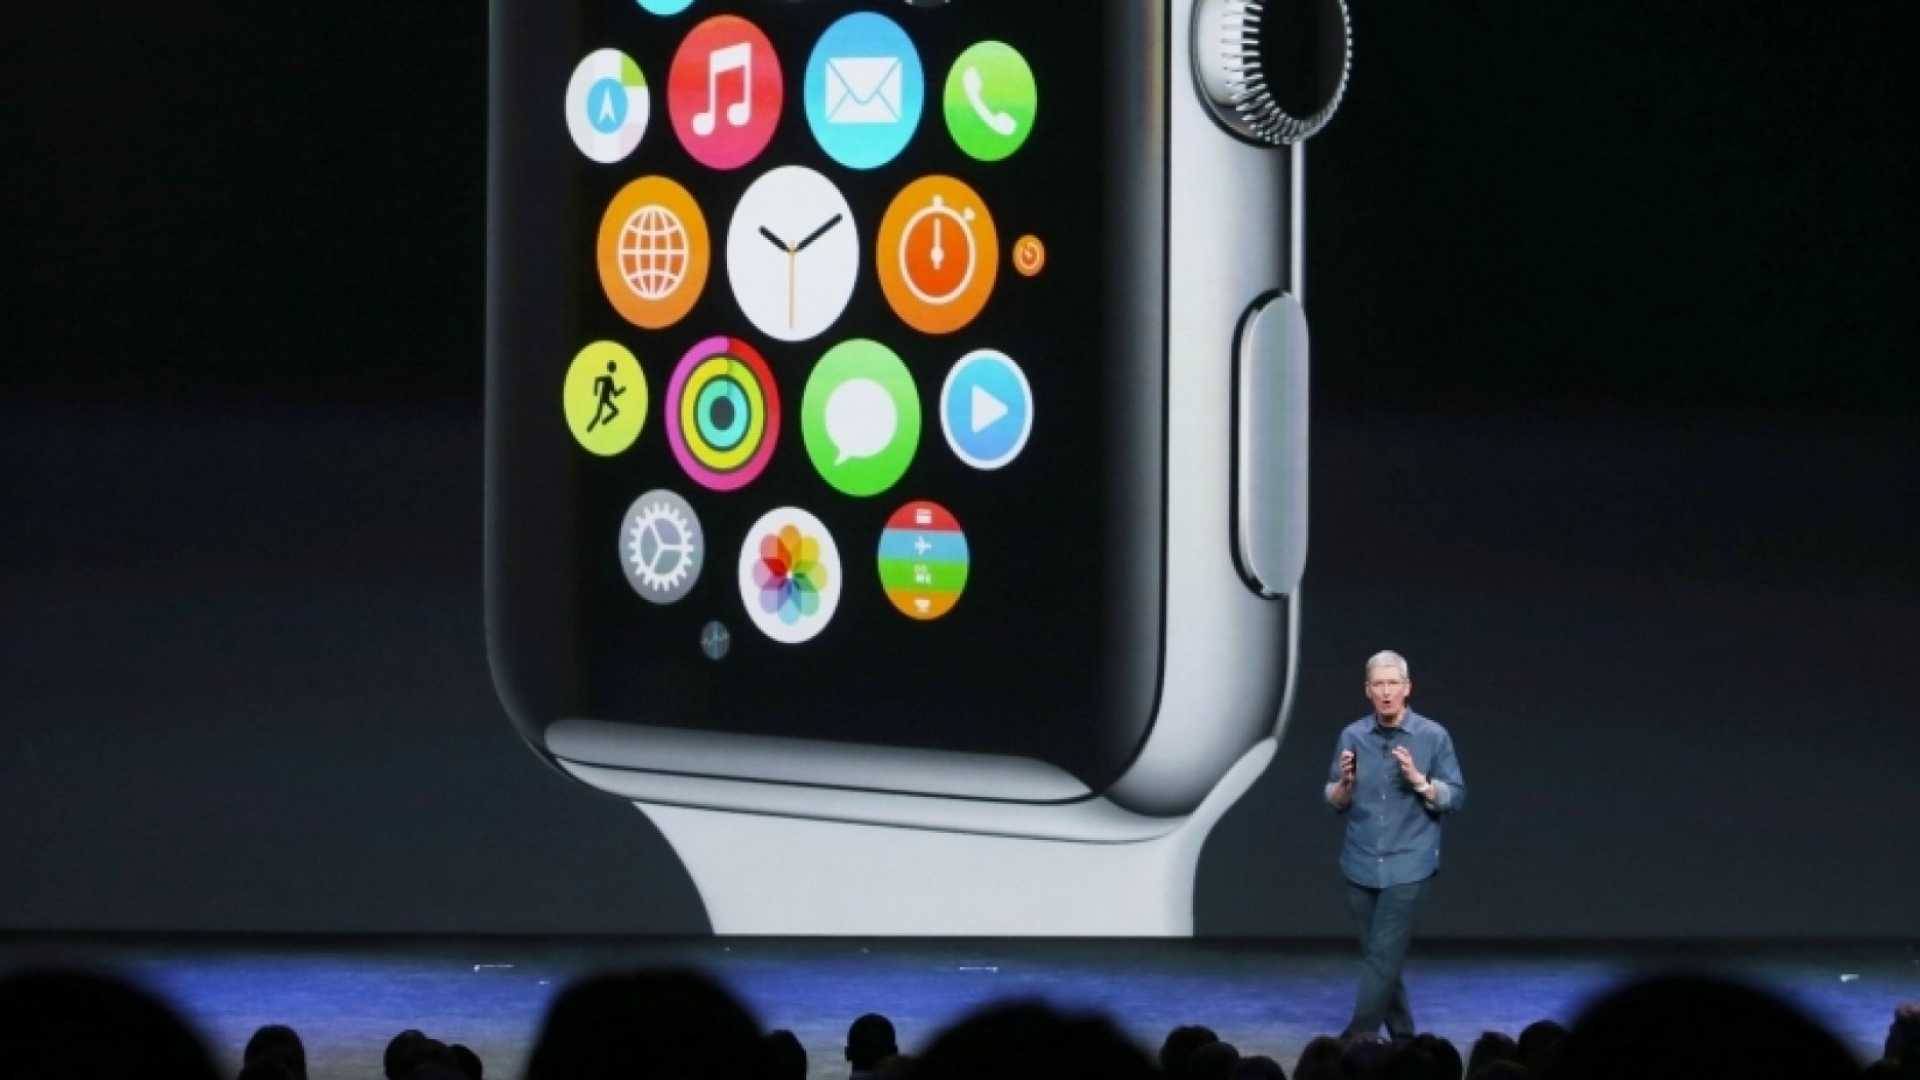 6 iOS Apps That Could Make the Apple Watch Indispensable